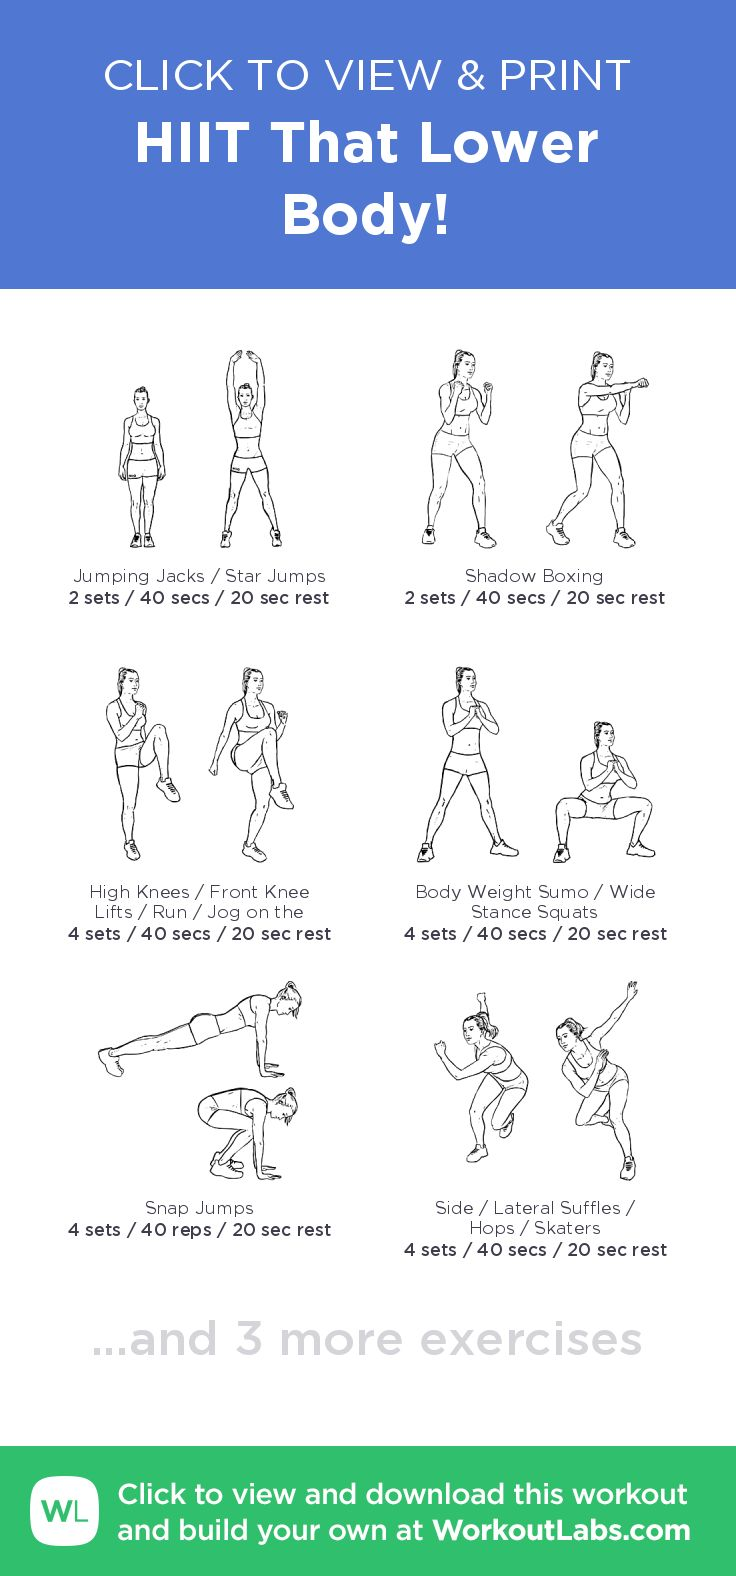 HIIT That Lower Body! click to view and print this